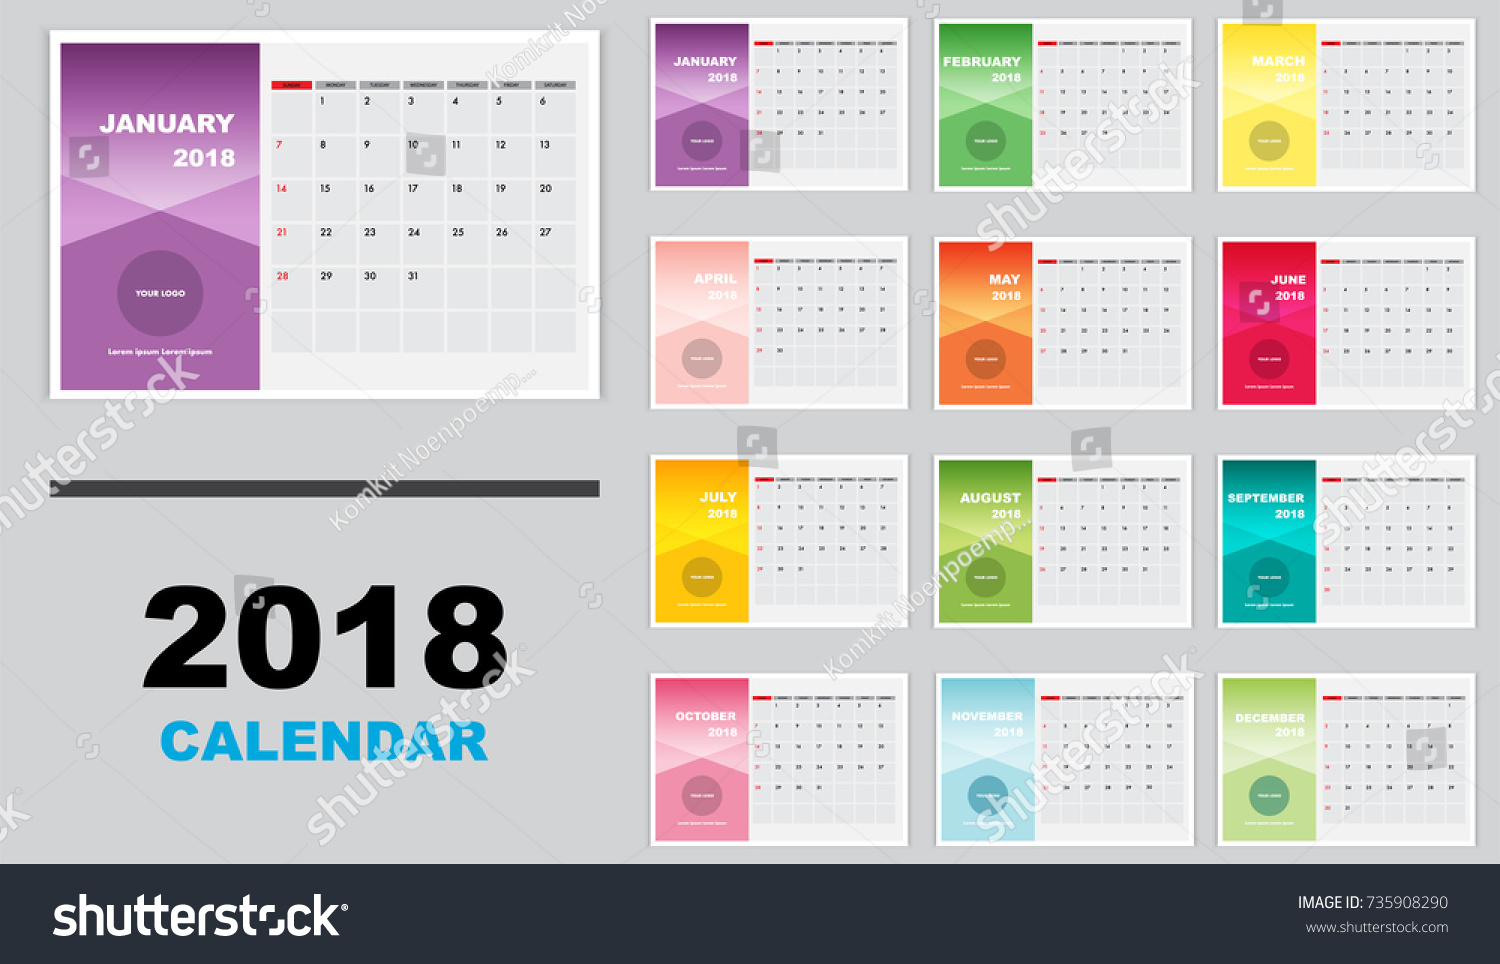 Horizontal Calendar Design : Calendar year horizontal template design stock vector